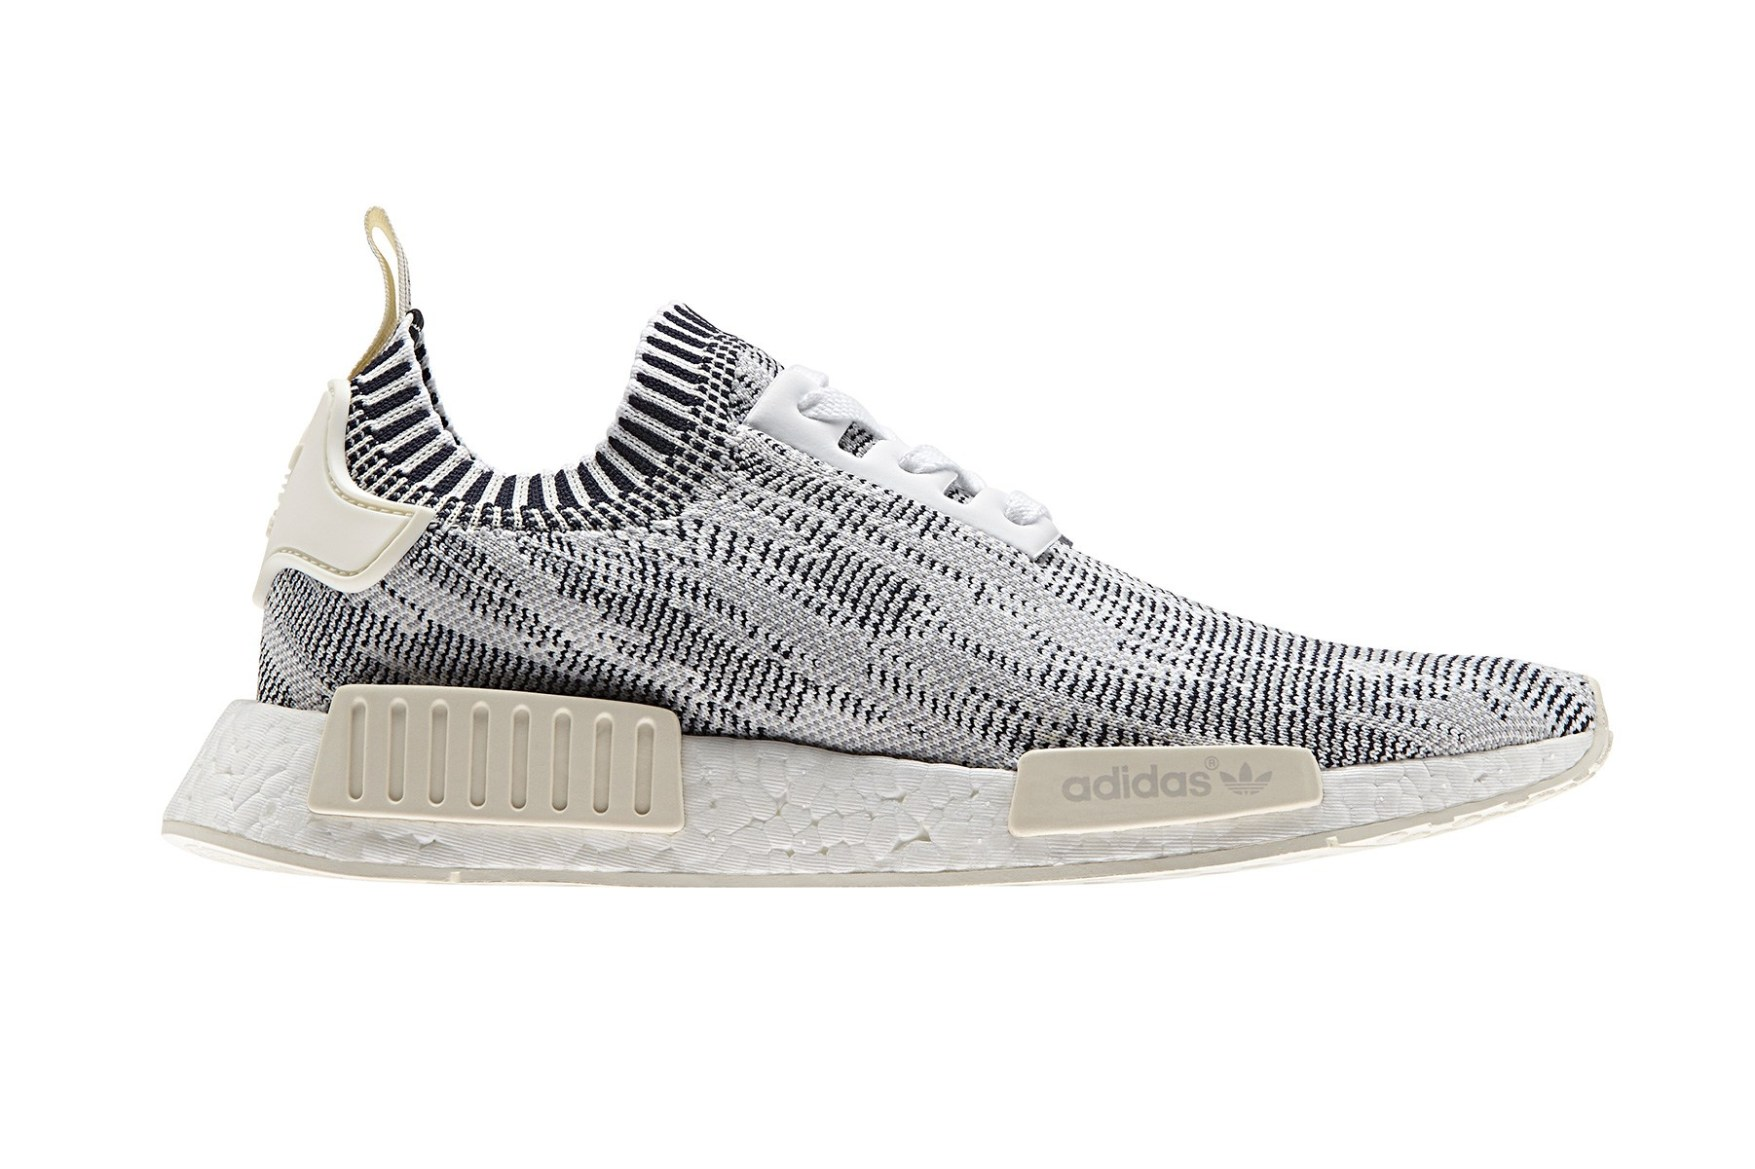 finest selection 3cf38 8bba7 Buy adidas nmd r1 mens shoes cheap Rimslow